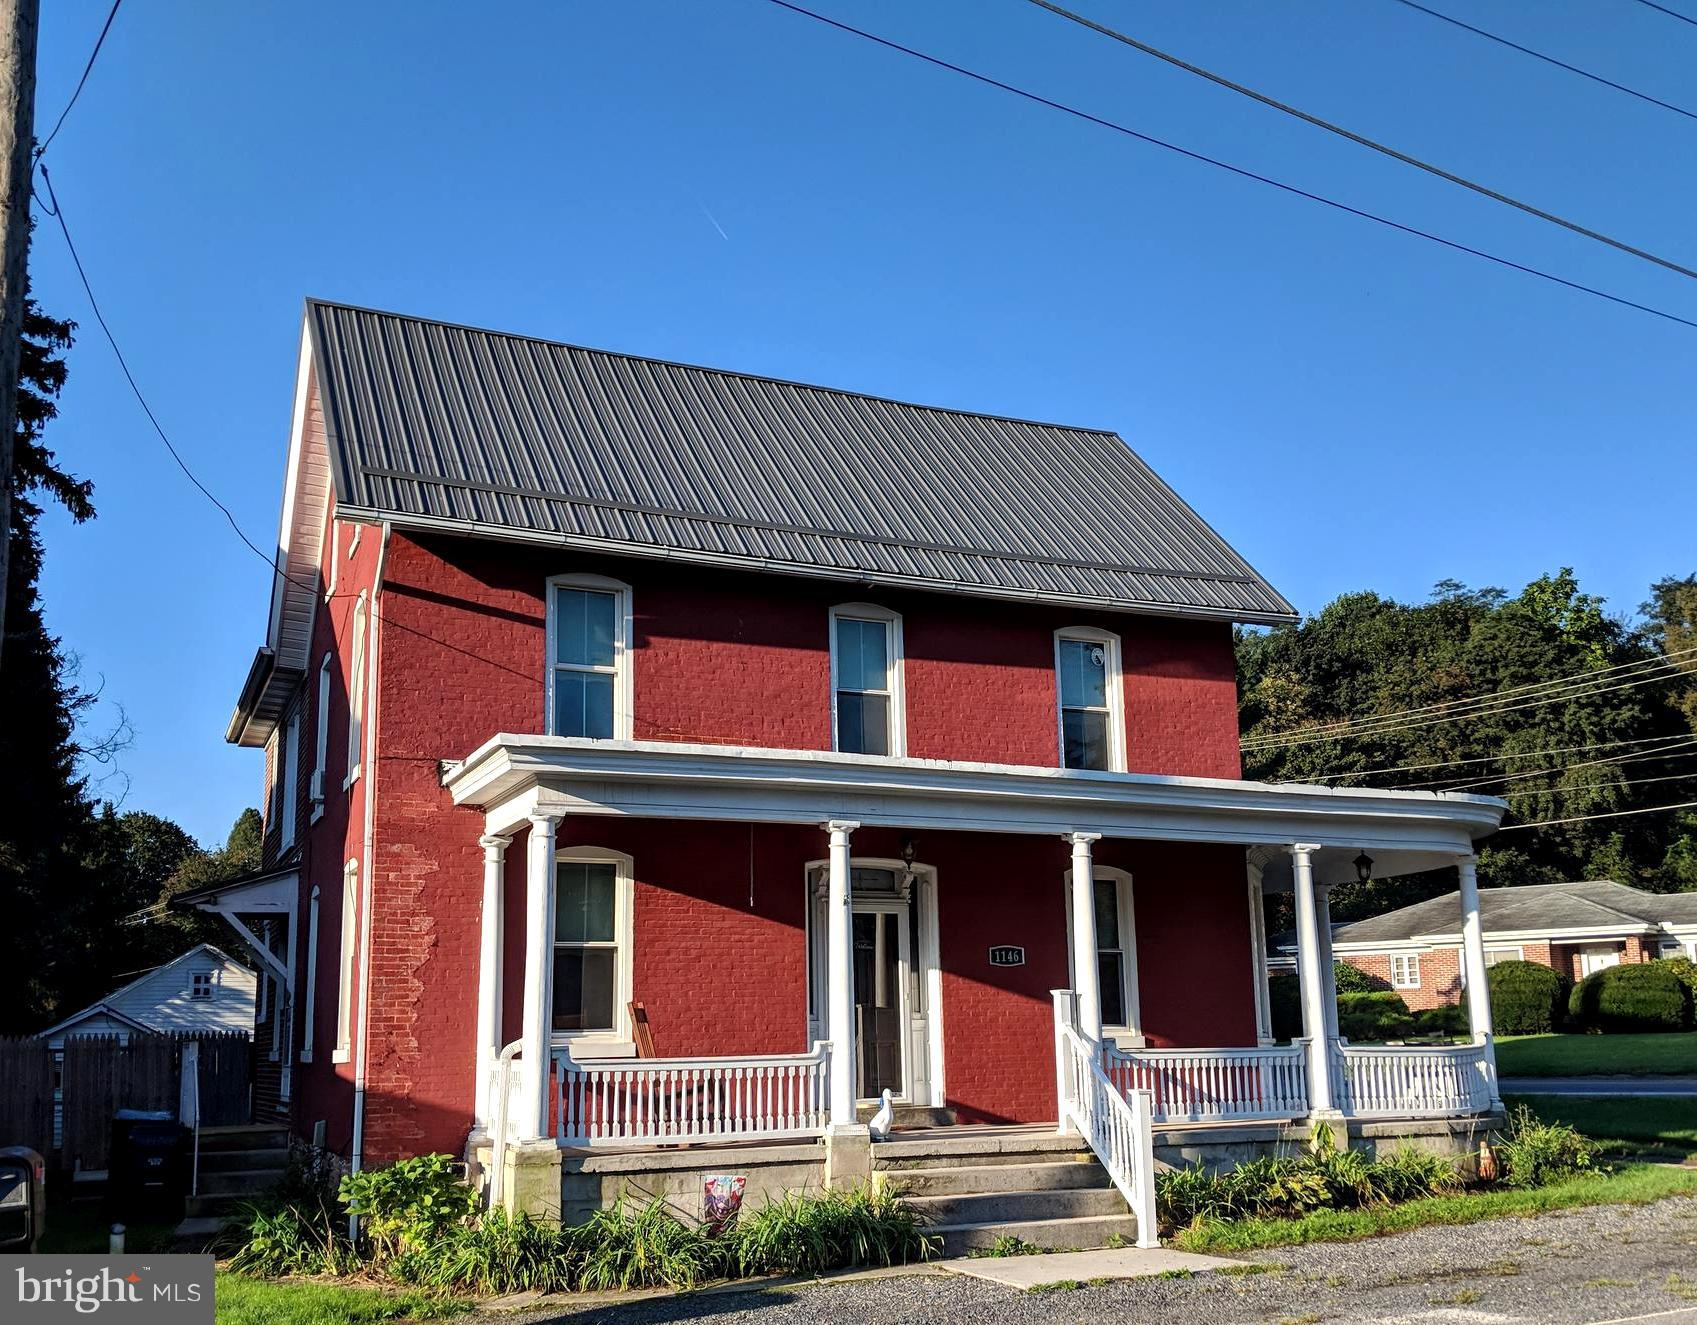 1146 OLD ROUTE 30, ORRTANNA, PA 17353